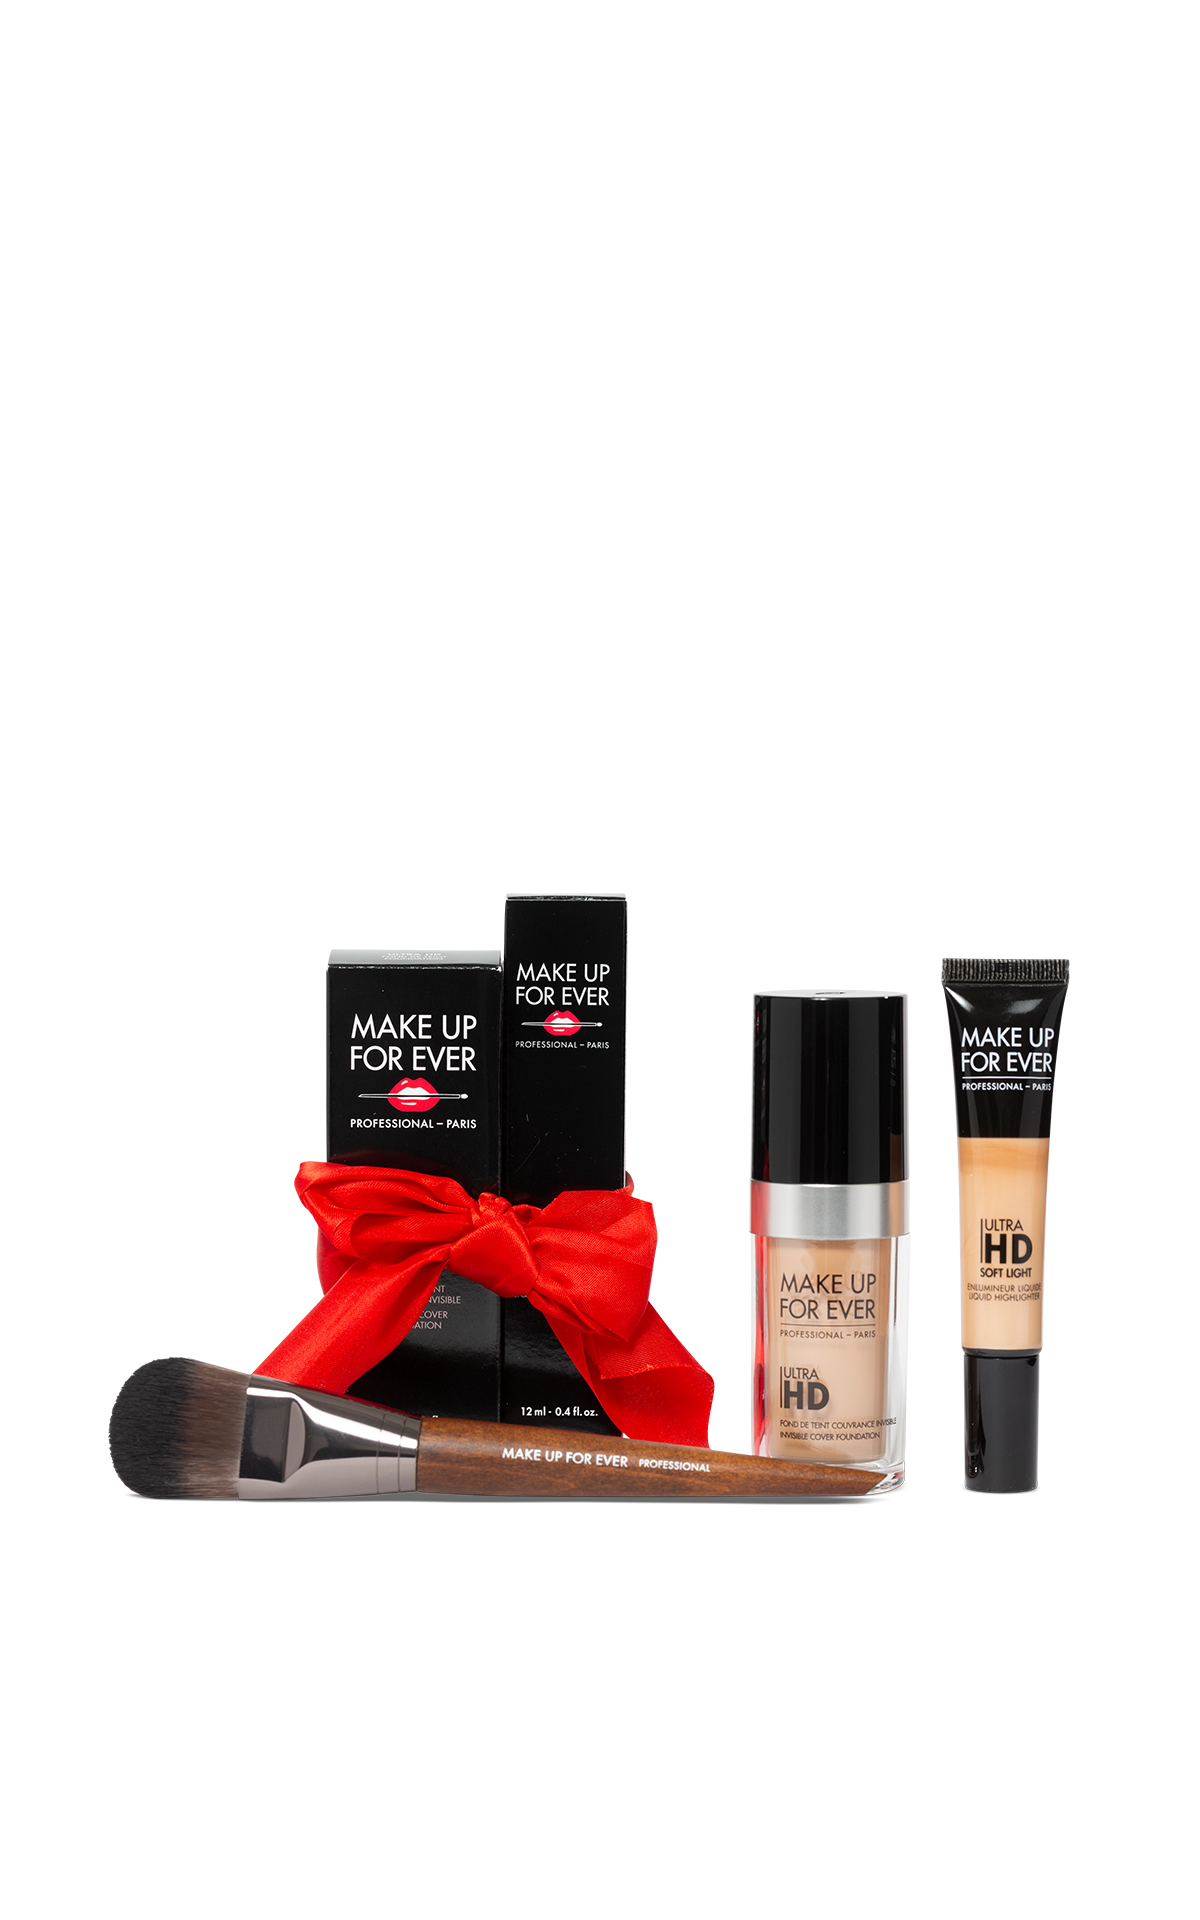 Make Up For Ever Skin tone set La Vallée Village